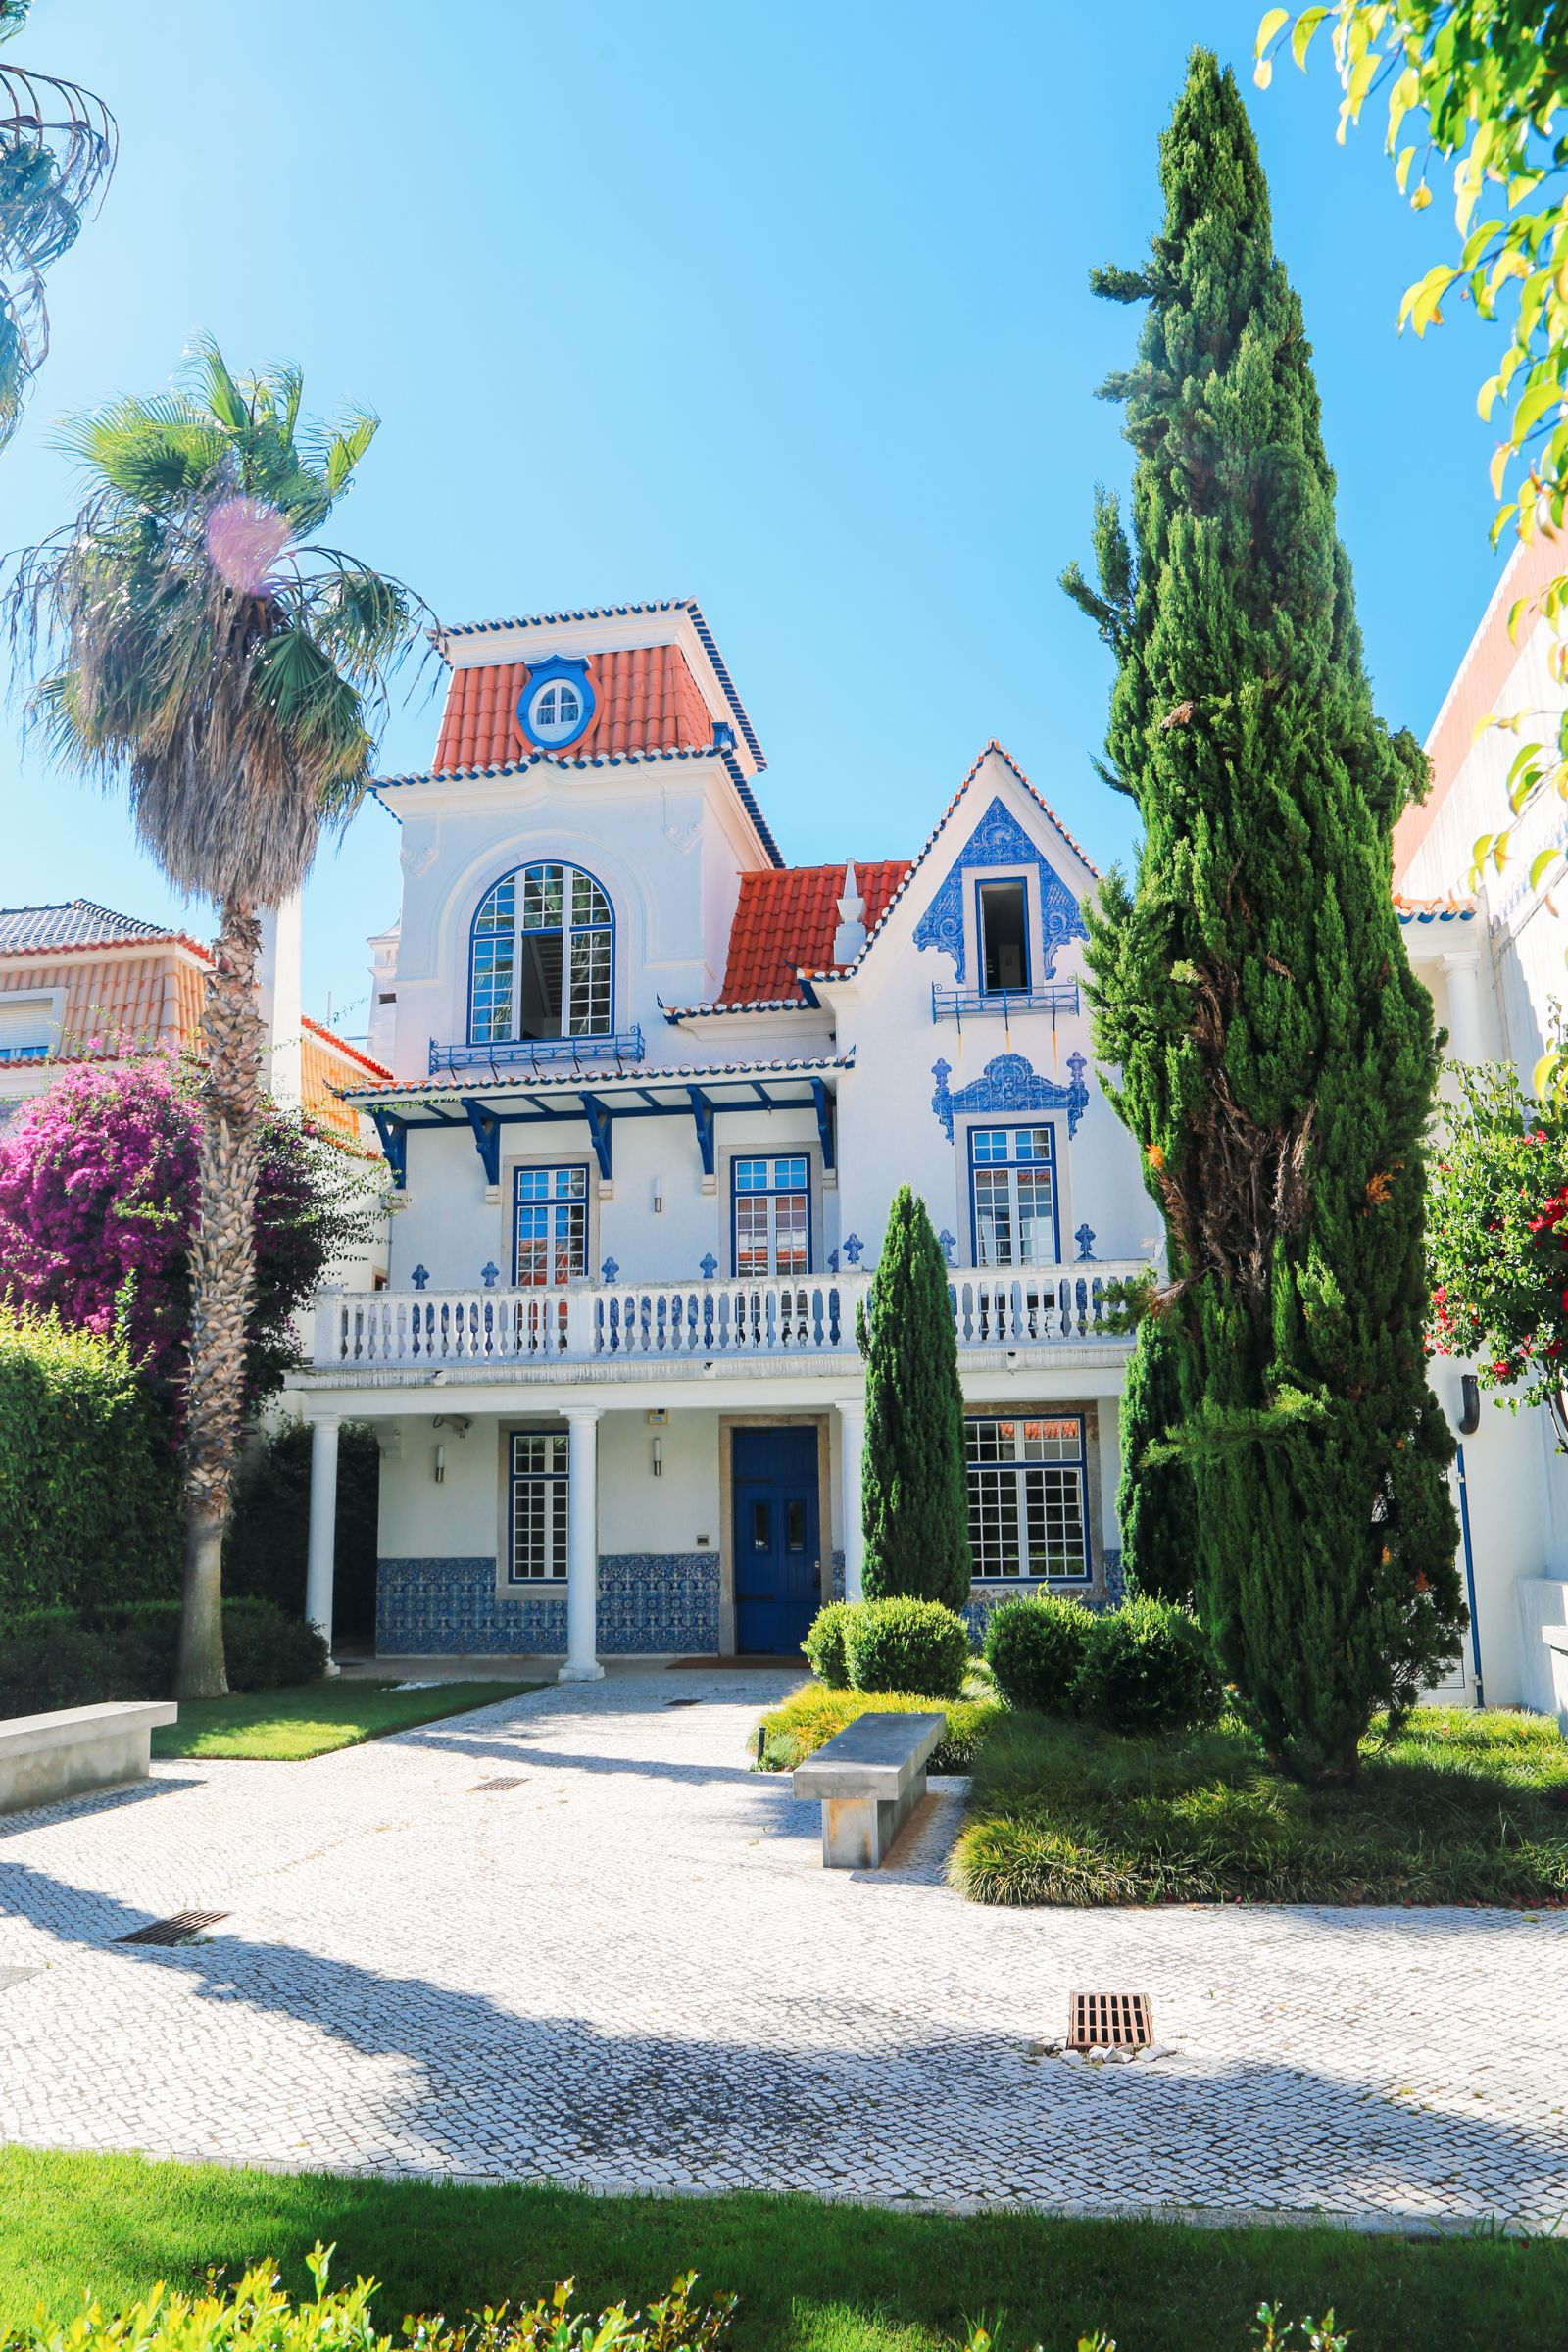 The Beautiful Seaside Town Of Cascais In Portugal... (56)